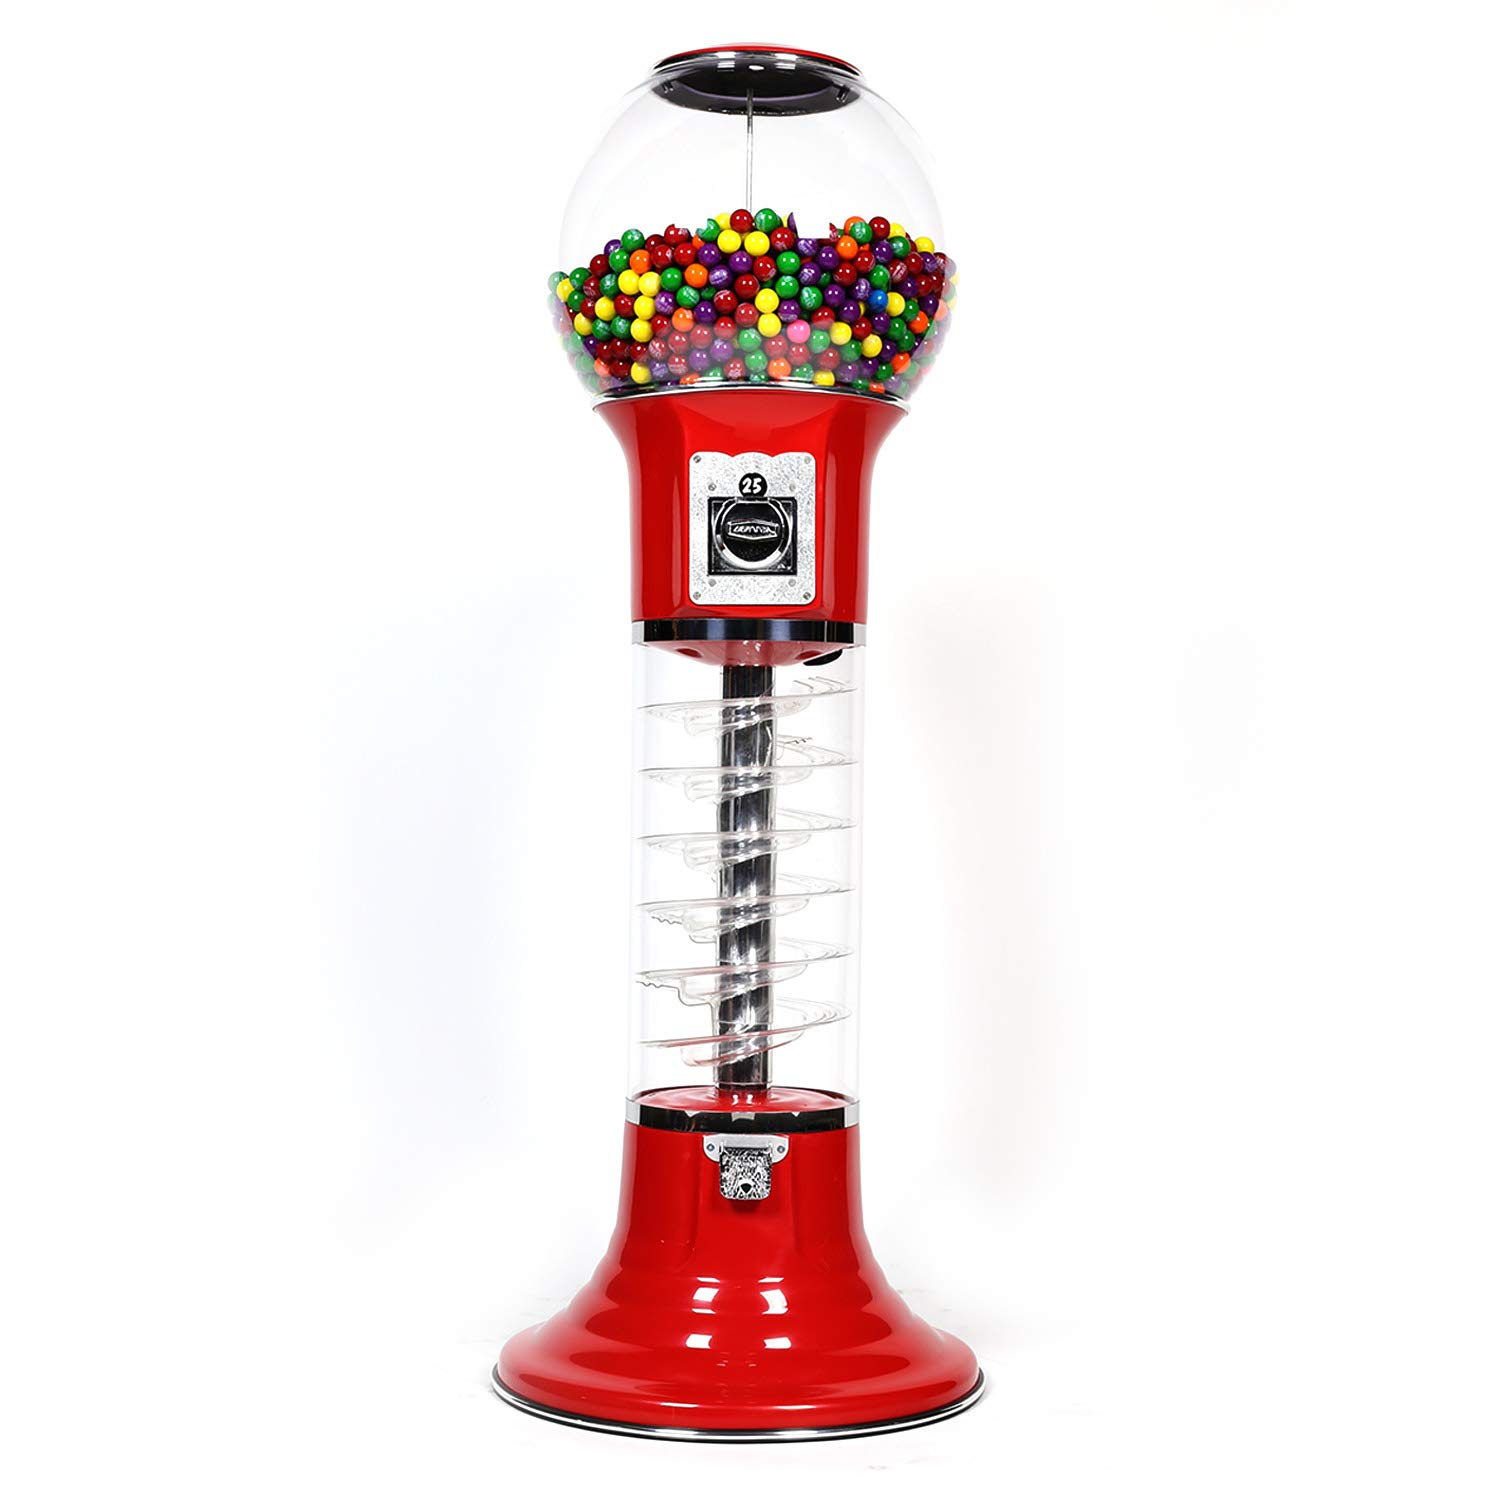 Spiral Gumball Vending Machines - Original Wizard 4'10'' - $0.25 (Red)